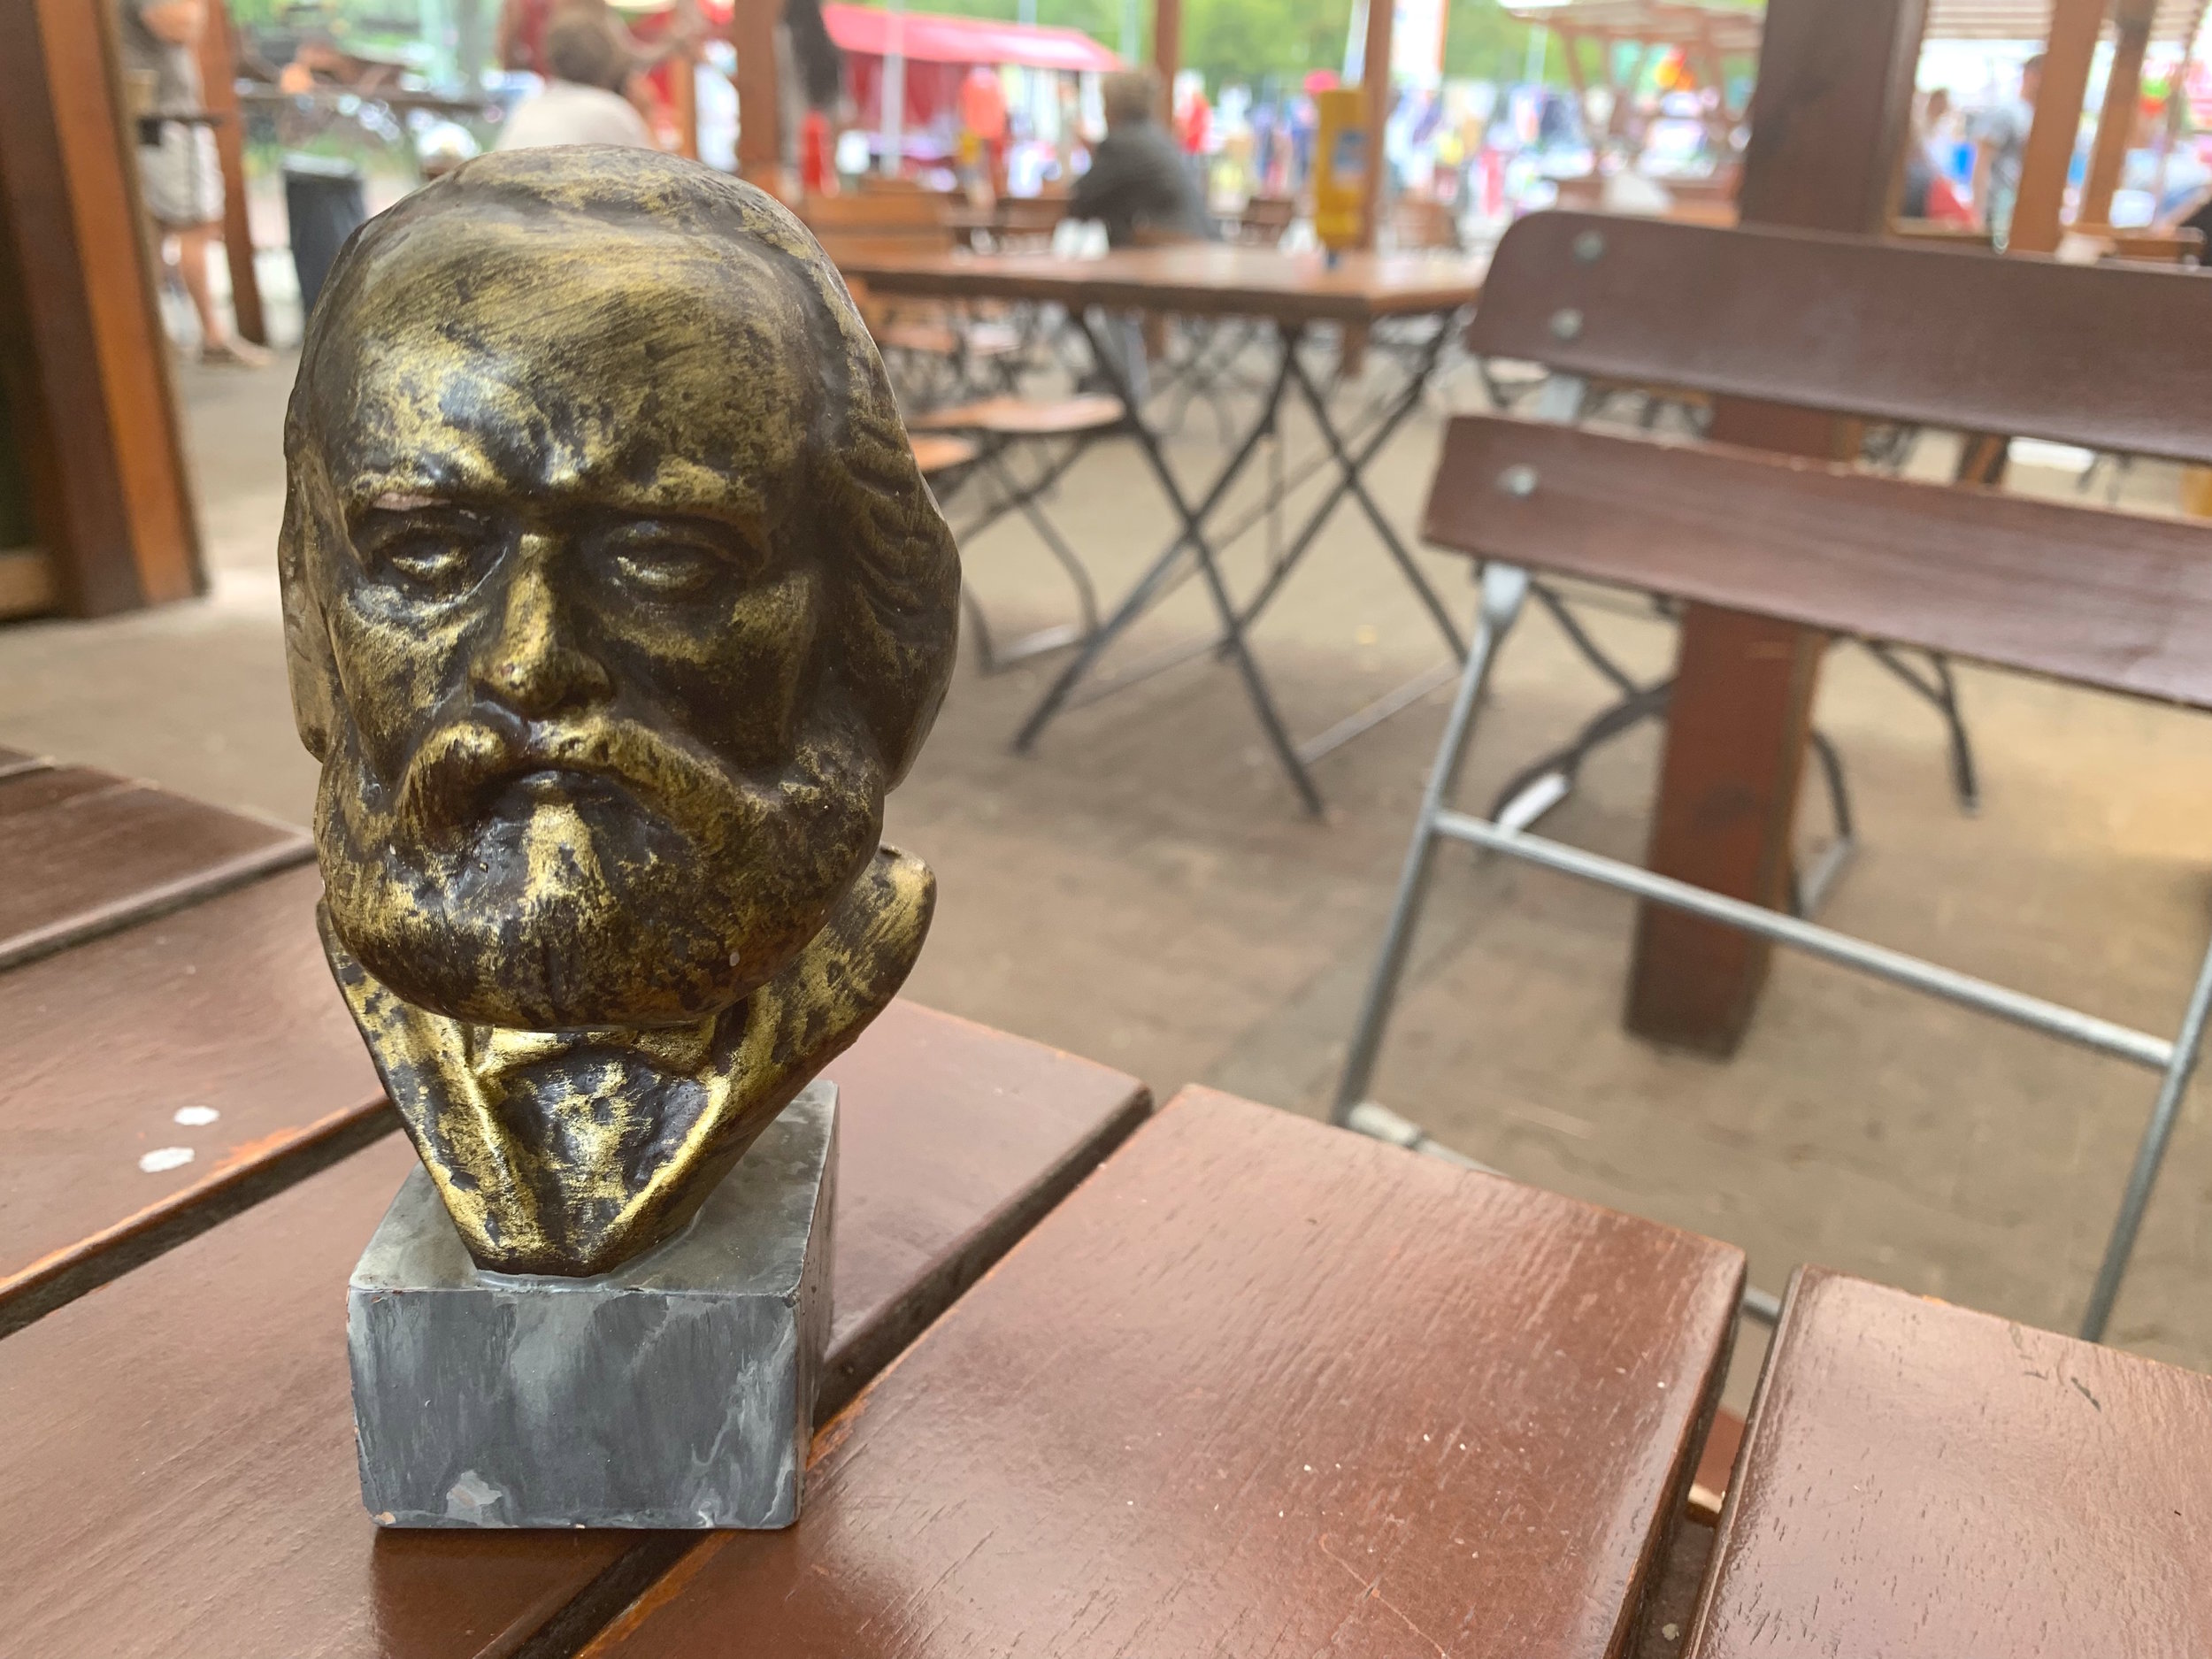 DDR-era bust of Marx purchased in the Weissensee trödelmarkt for 3 euro